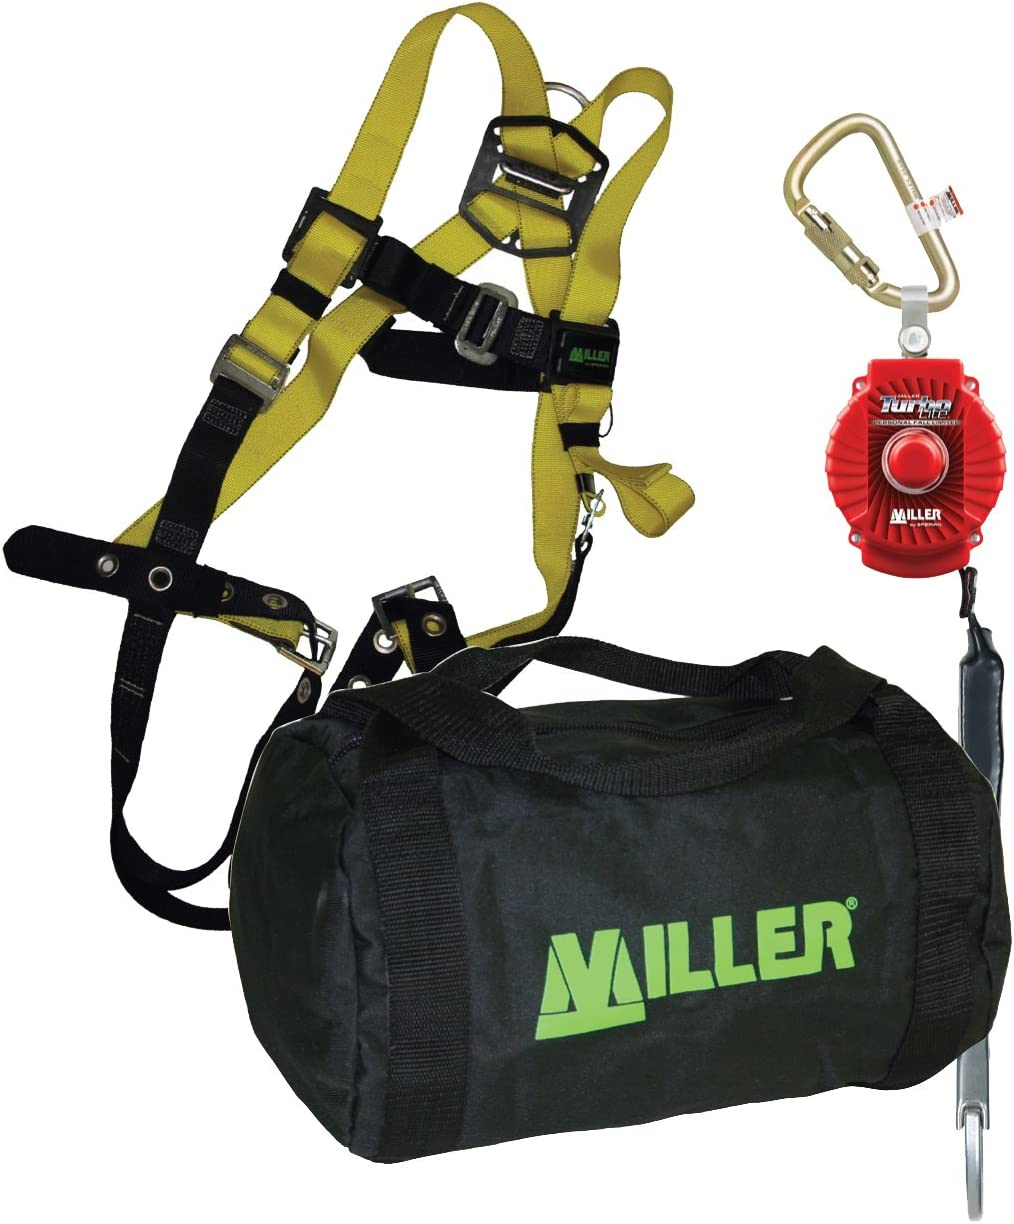 Miller by Honeywell MK650-4UMFL-1 Recommended Max 49% OFF Kit 6FT Protection Fall